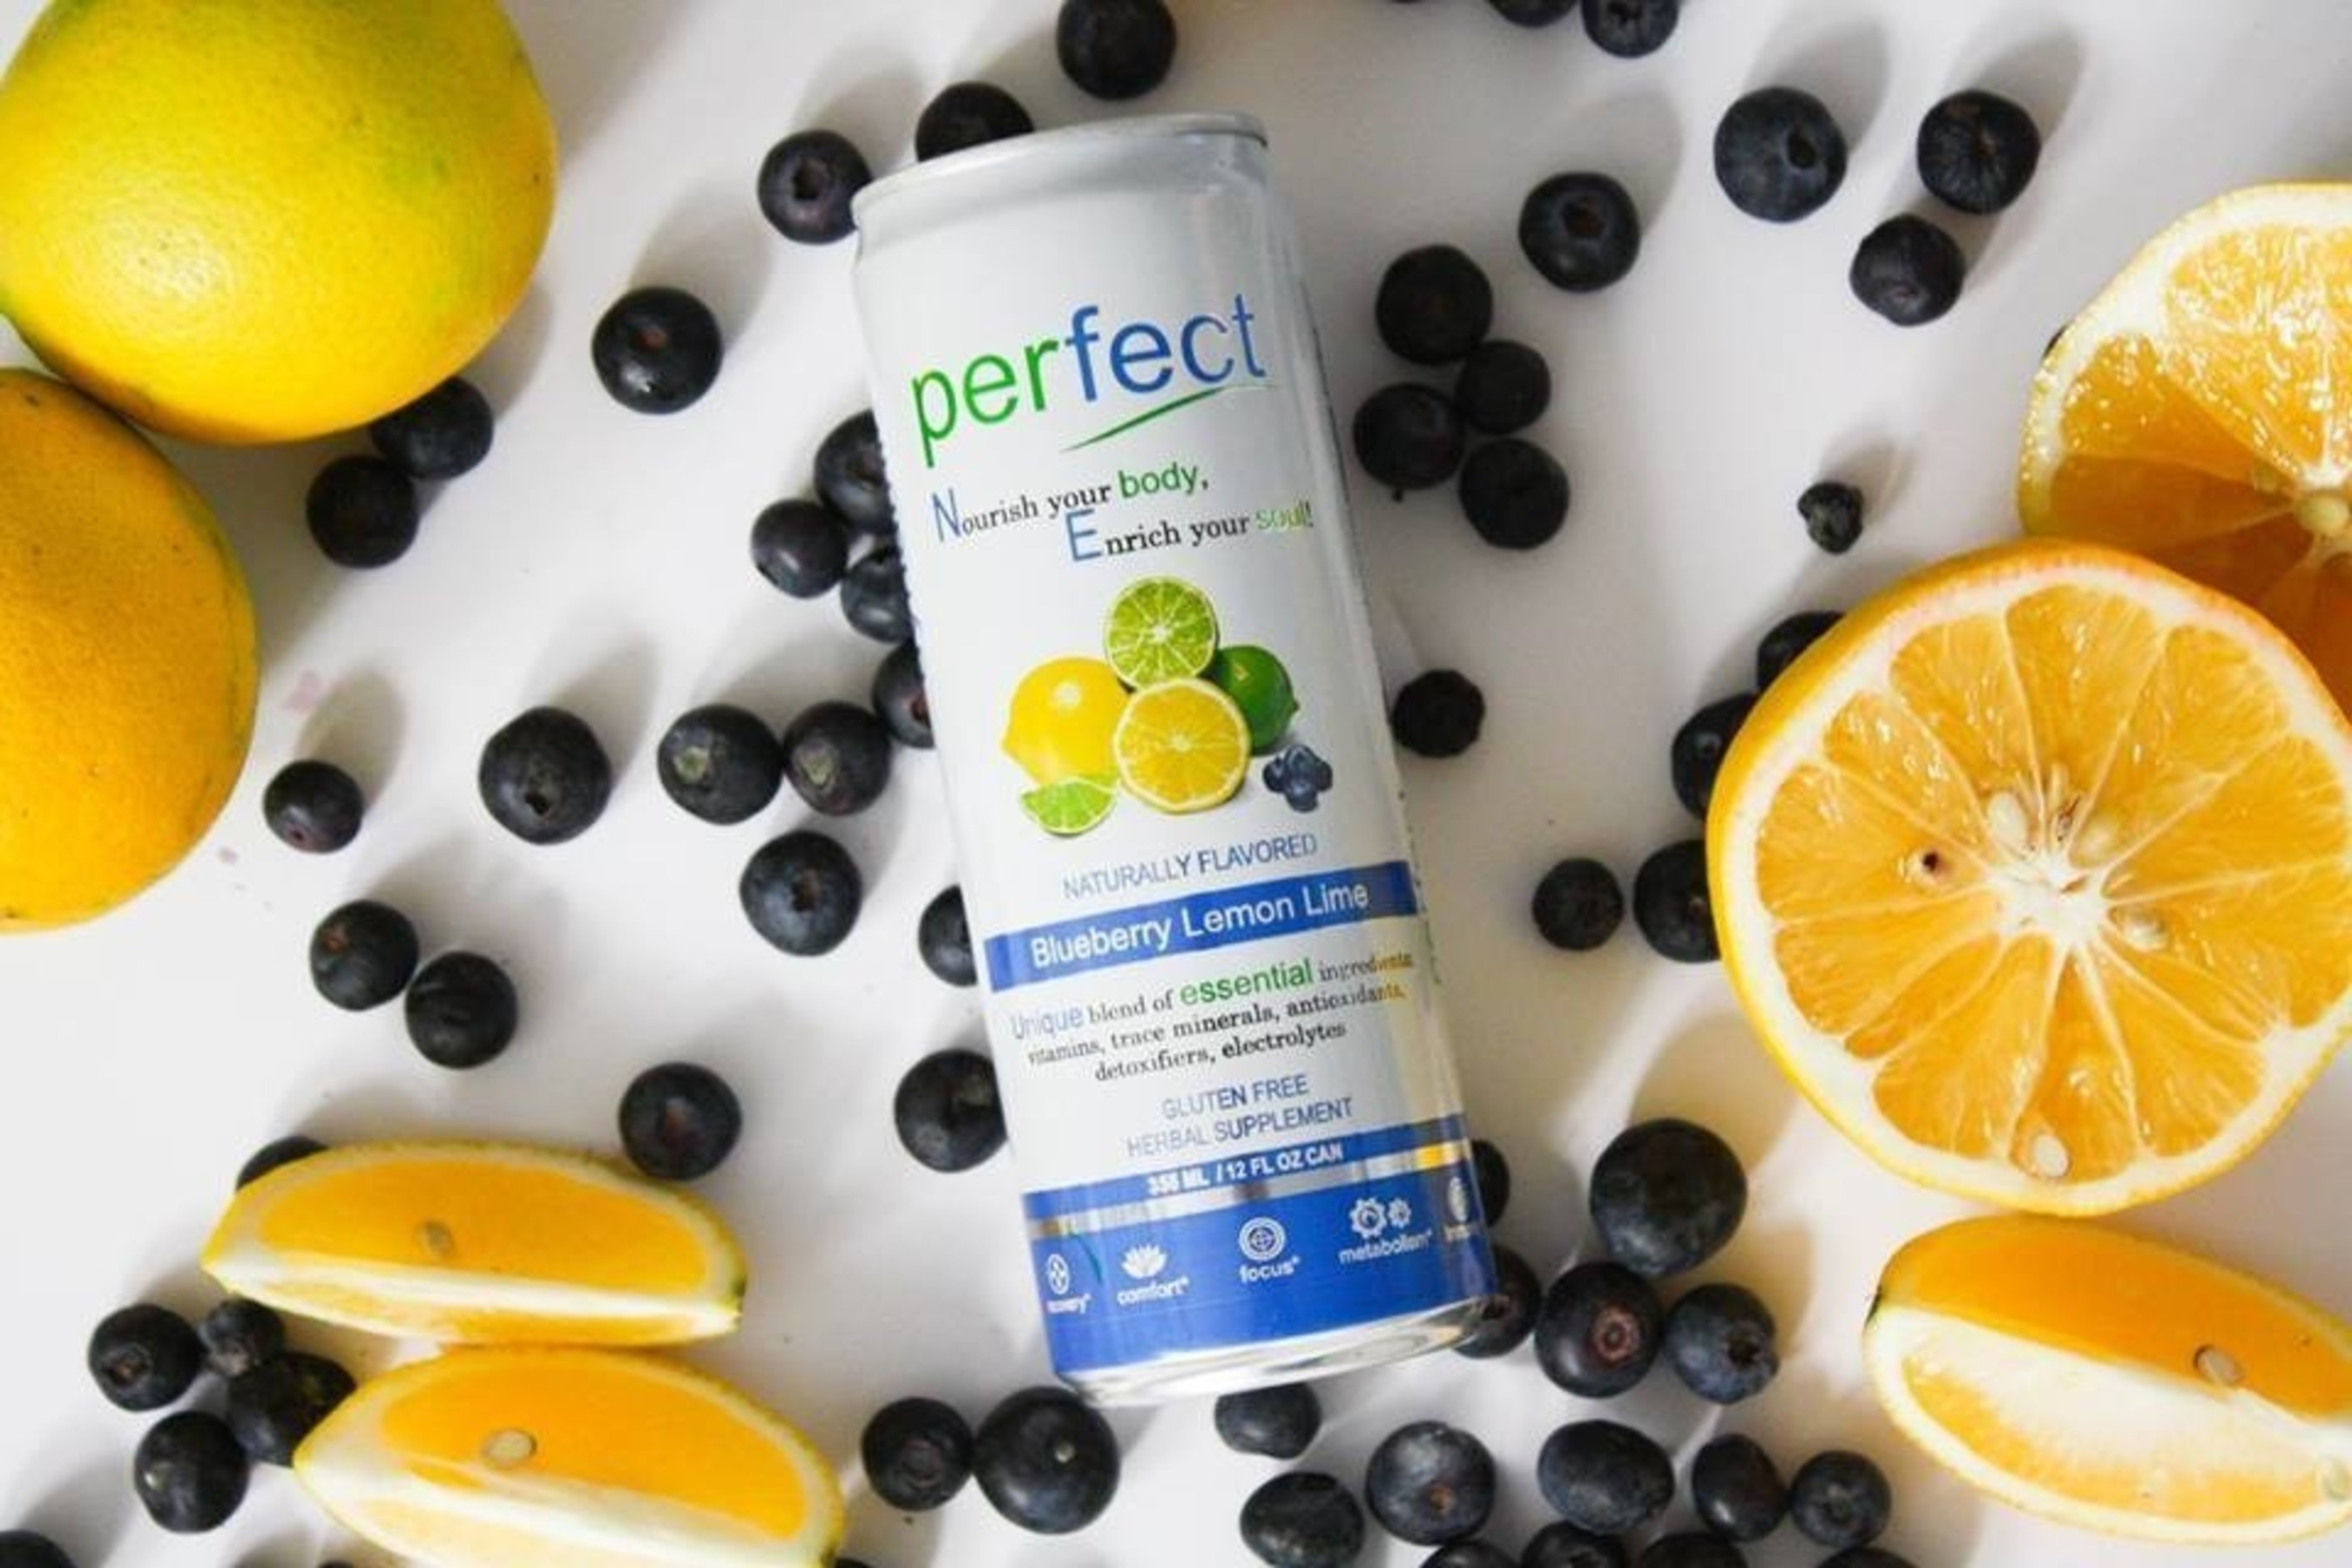 Ball Corporation manufactured the Natural Choice Beverage's Perfect blueberry lemon lime 12-ounce sleek can.